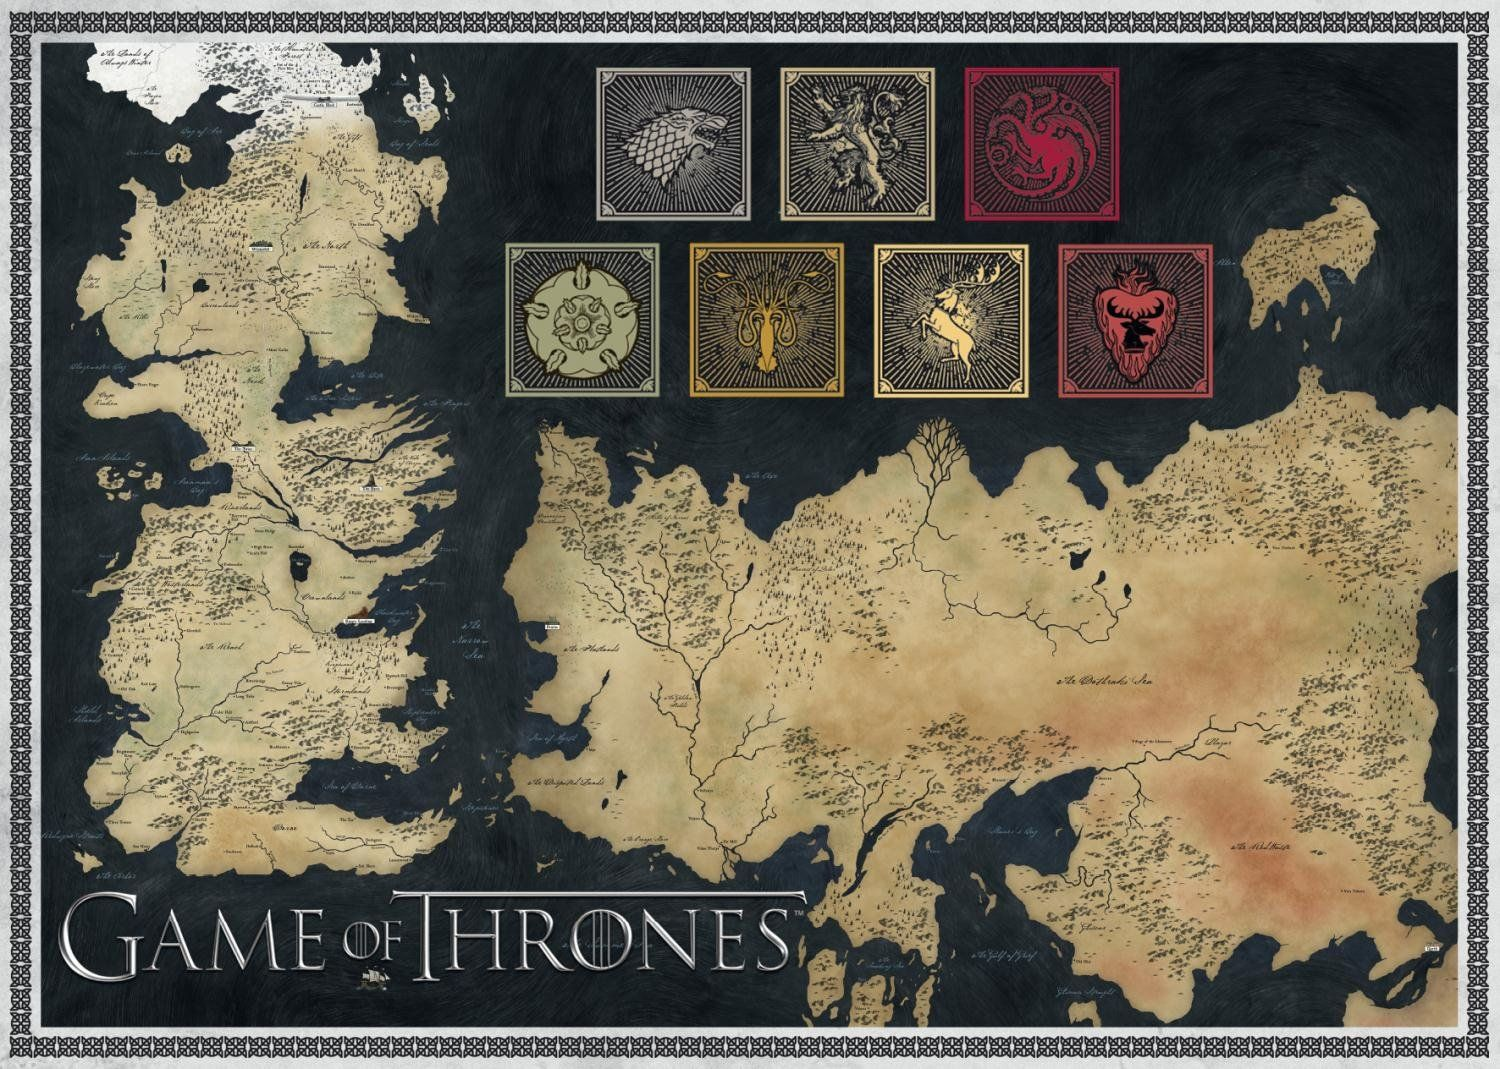 Game of thrones jigsaw puzzles explore game of thrones map jigsaw puzzles and more gumiabroncs Images